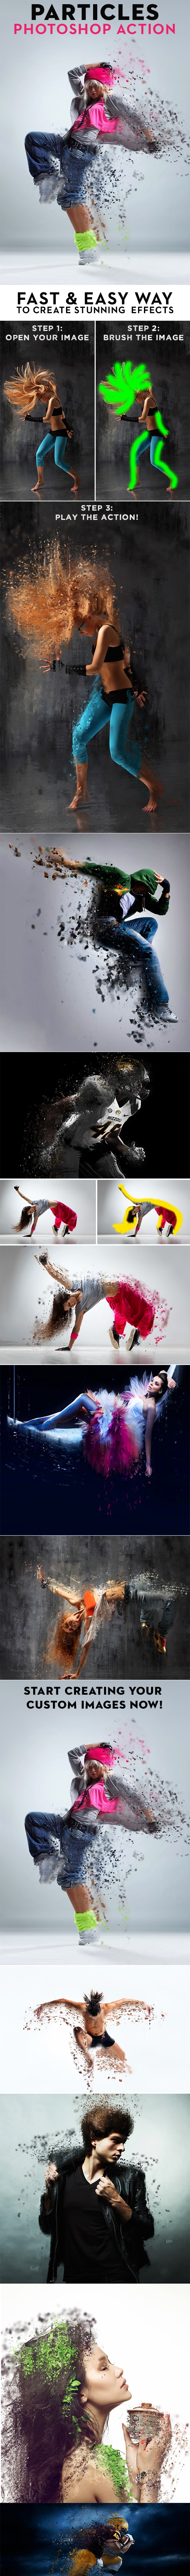 PARTICLES Photoshop Action - Photo Effects Actions